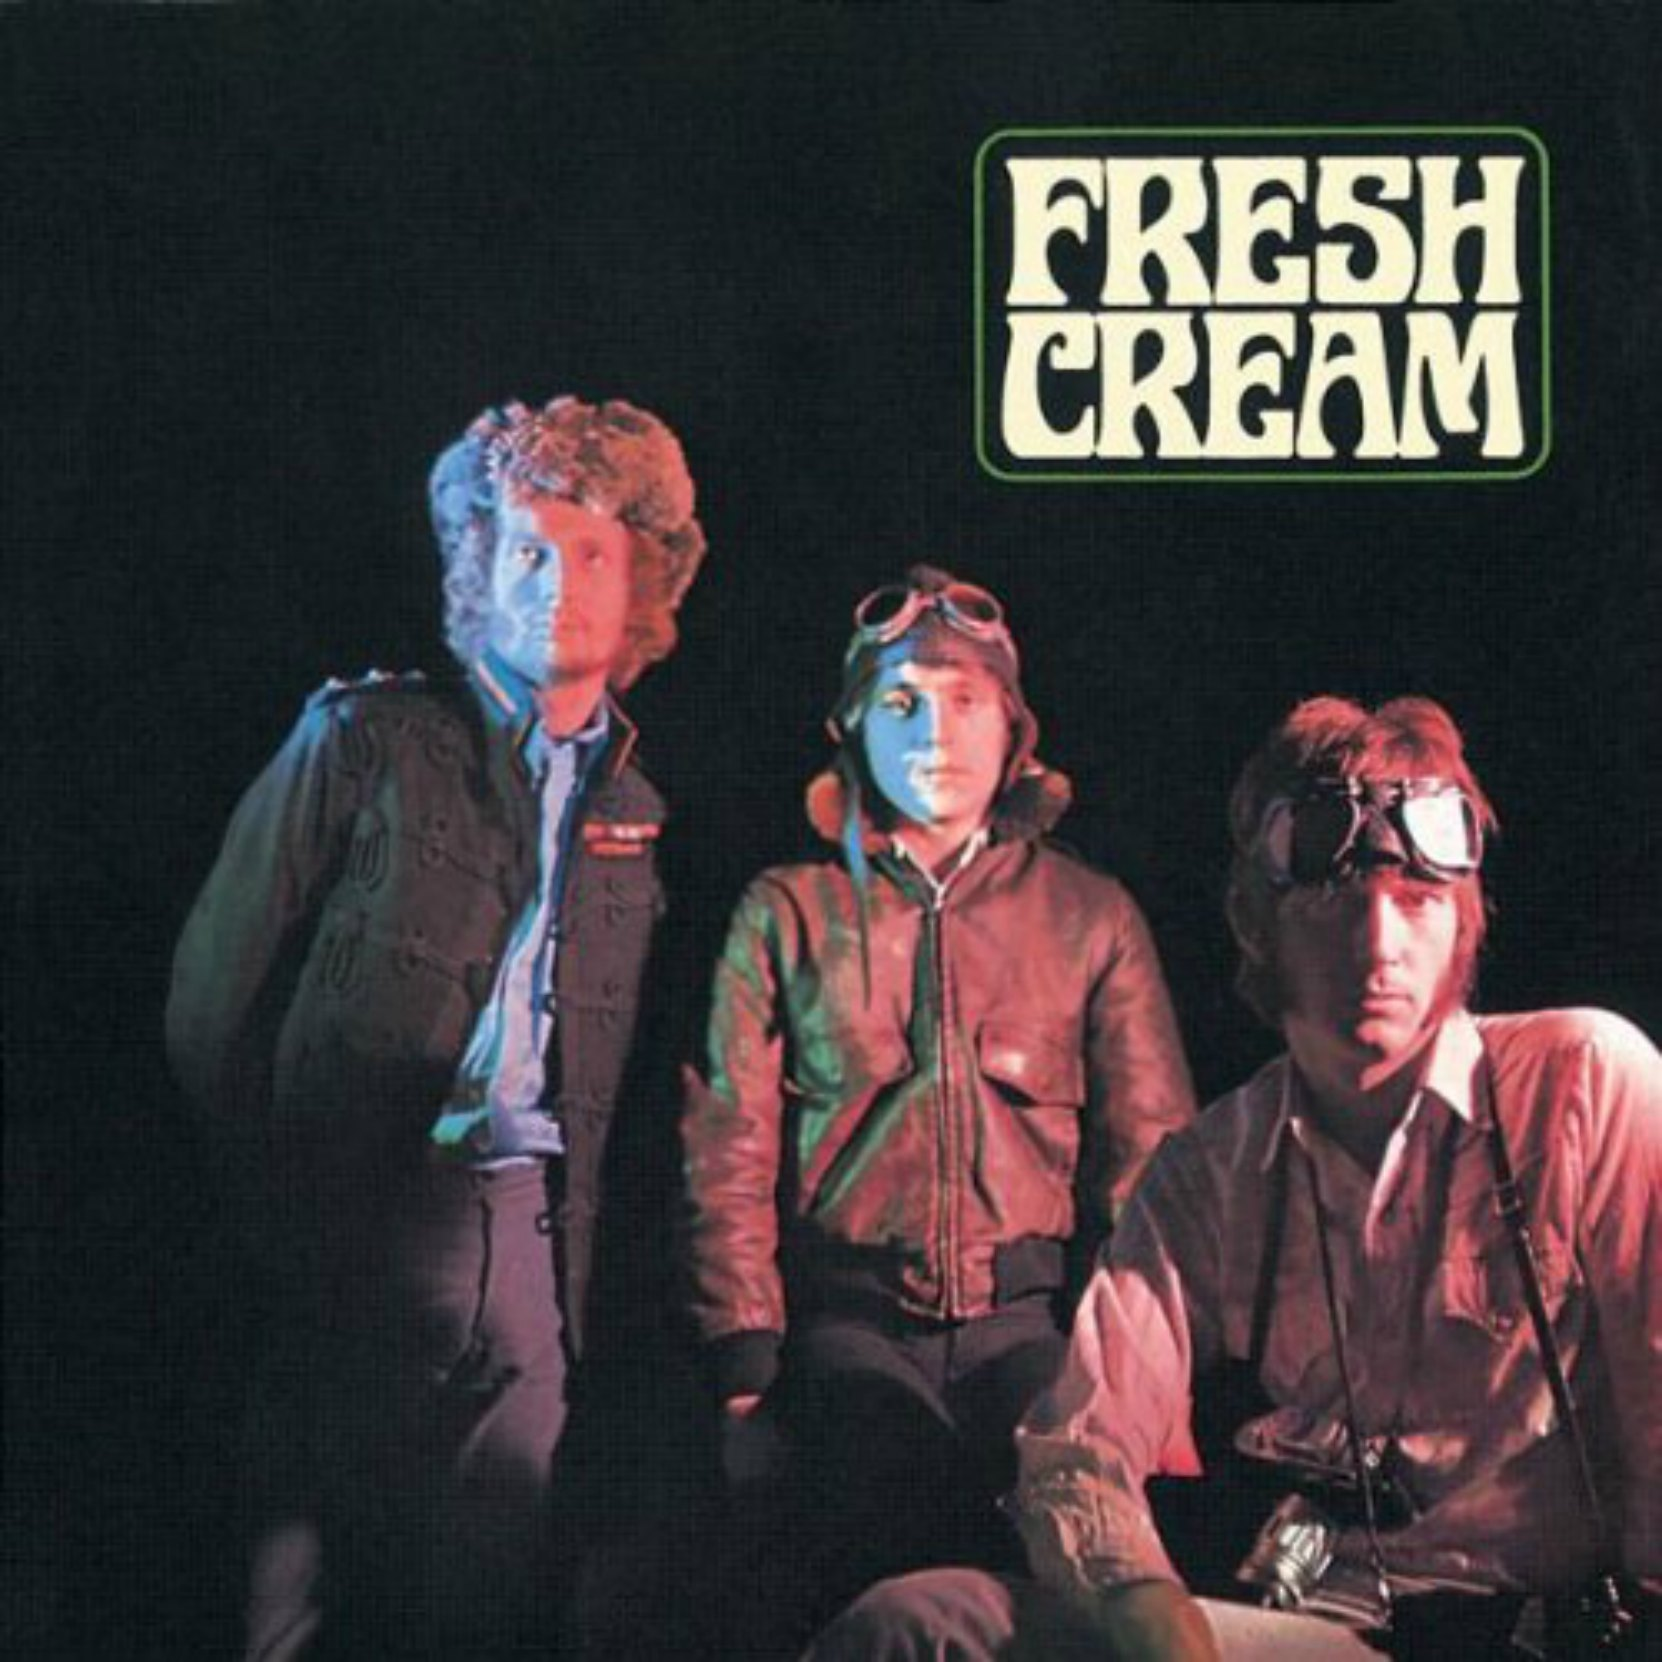 Album cover, Fresh Cream by Cream, originally released in December 1966.